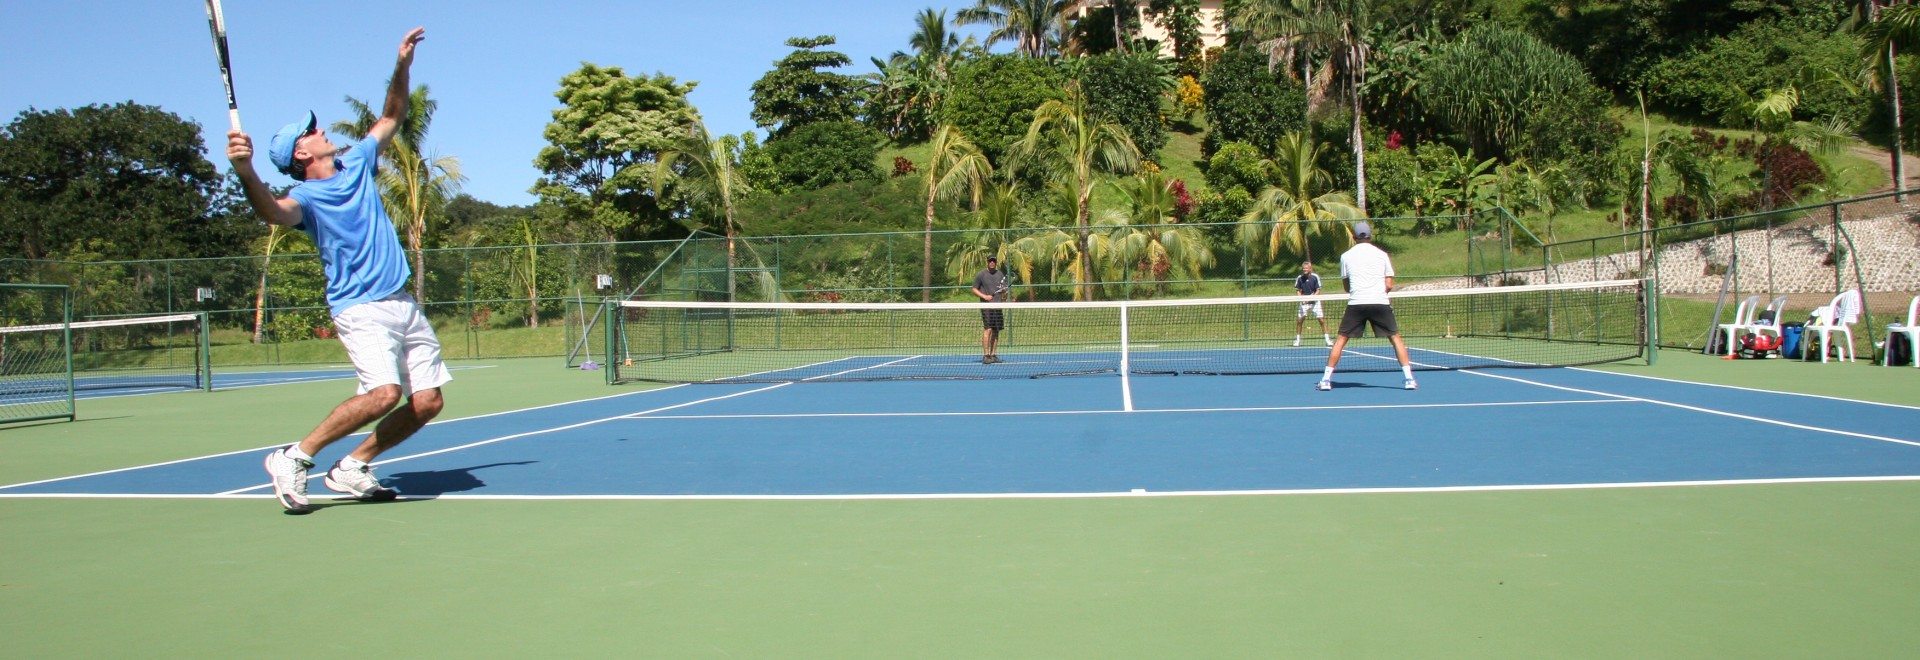 506 Tennis Center, Nosara, Costa Rica - Book. Travel. Play.